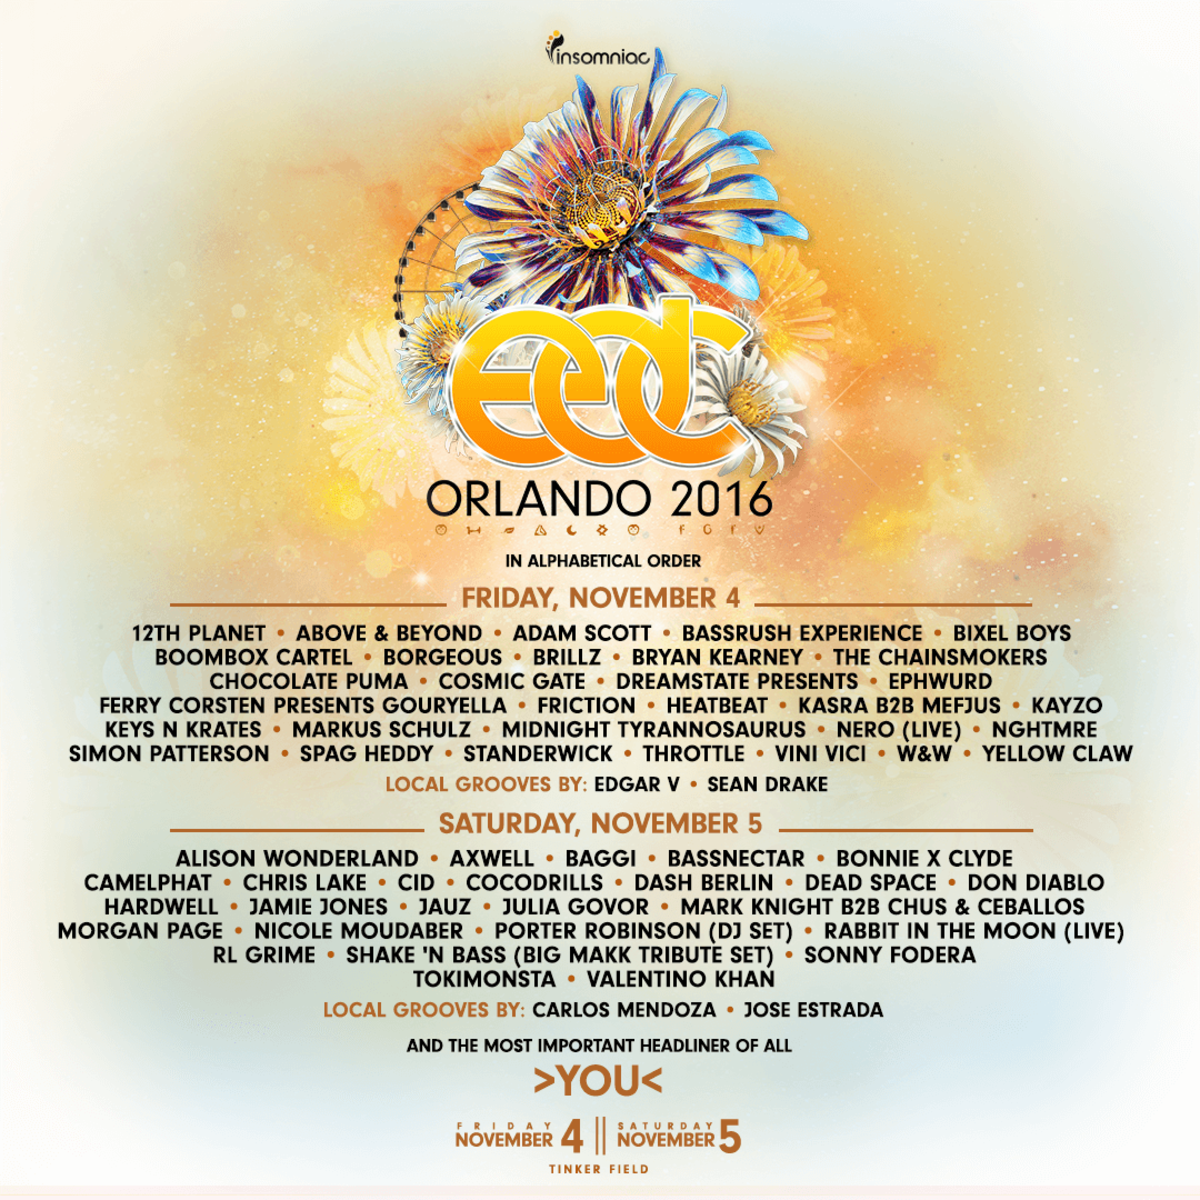 edc_orlando_2016_lu_lineup_by_day_1080x1080_r04.png